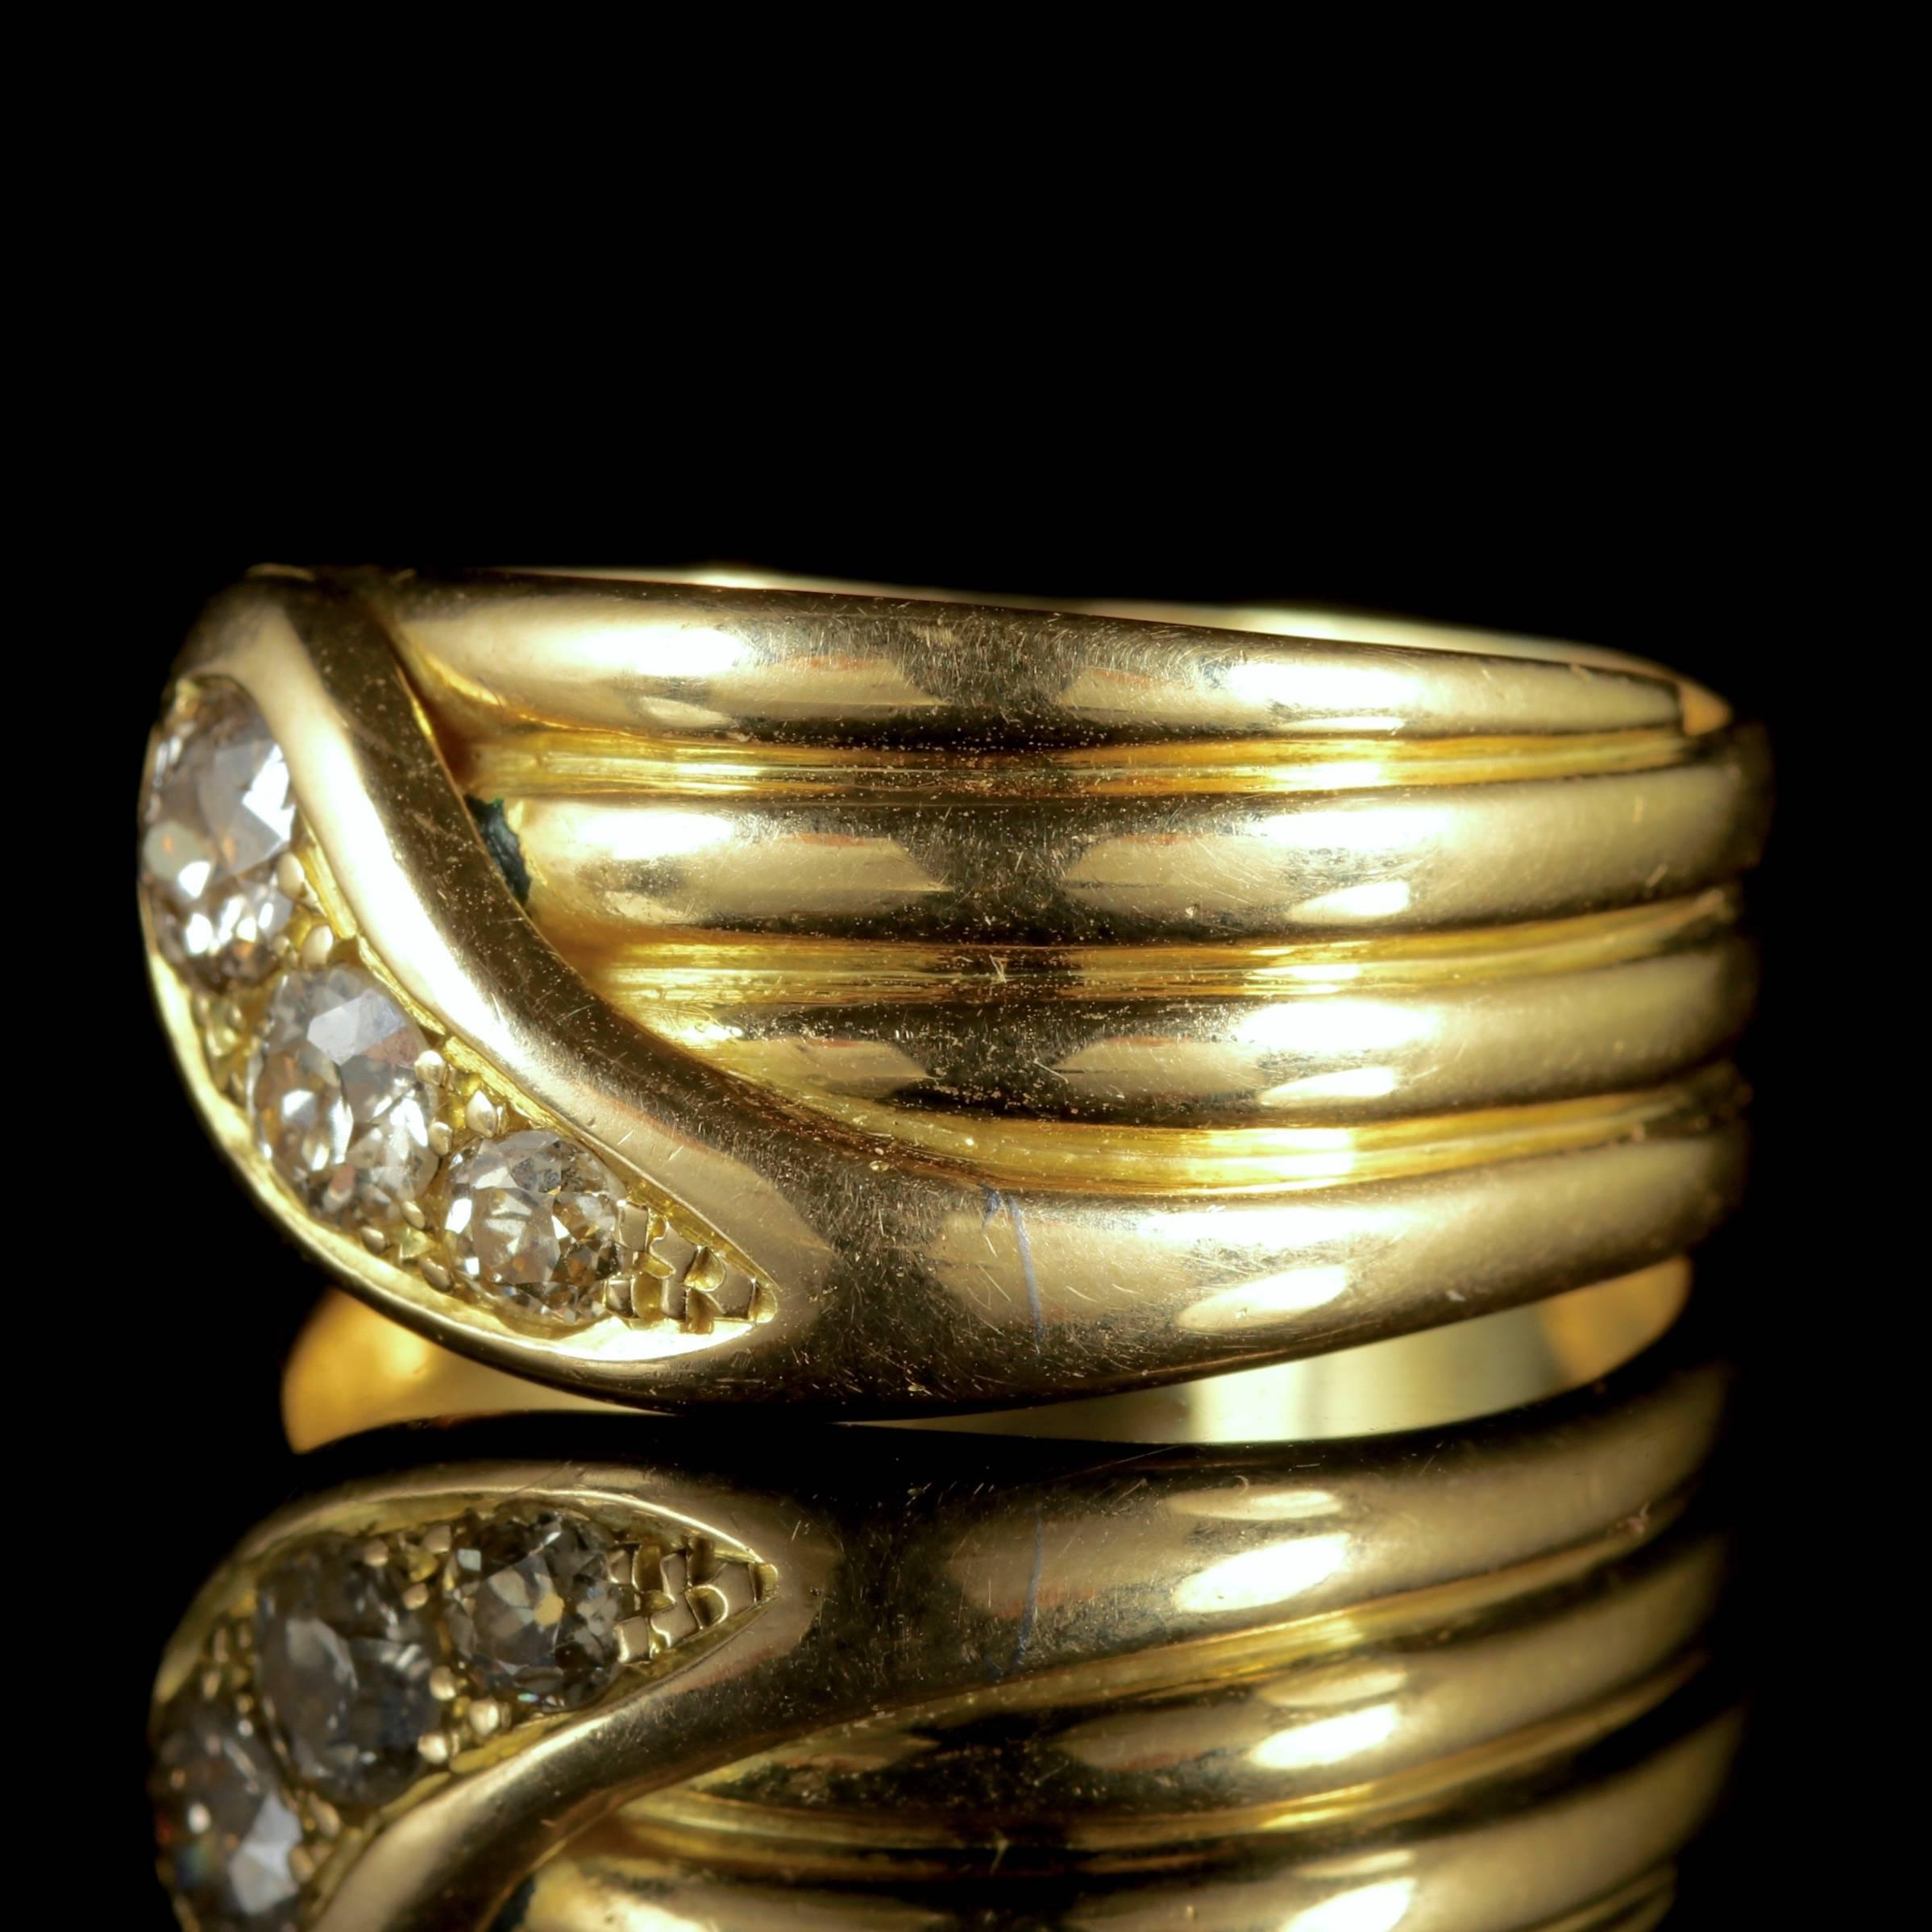 serpent ring j garnet for antique band double rings victorian serp id jewelry master at sale